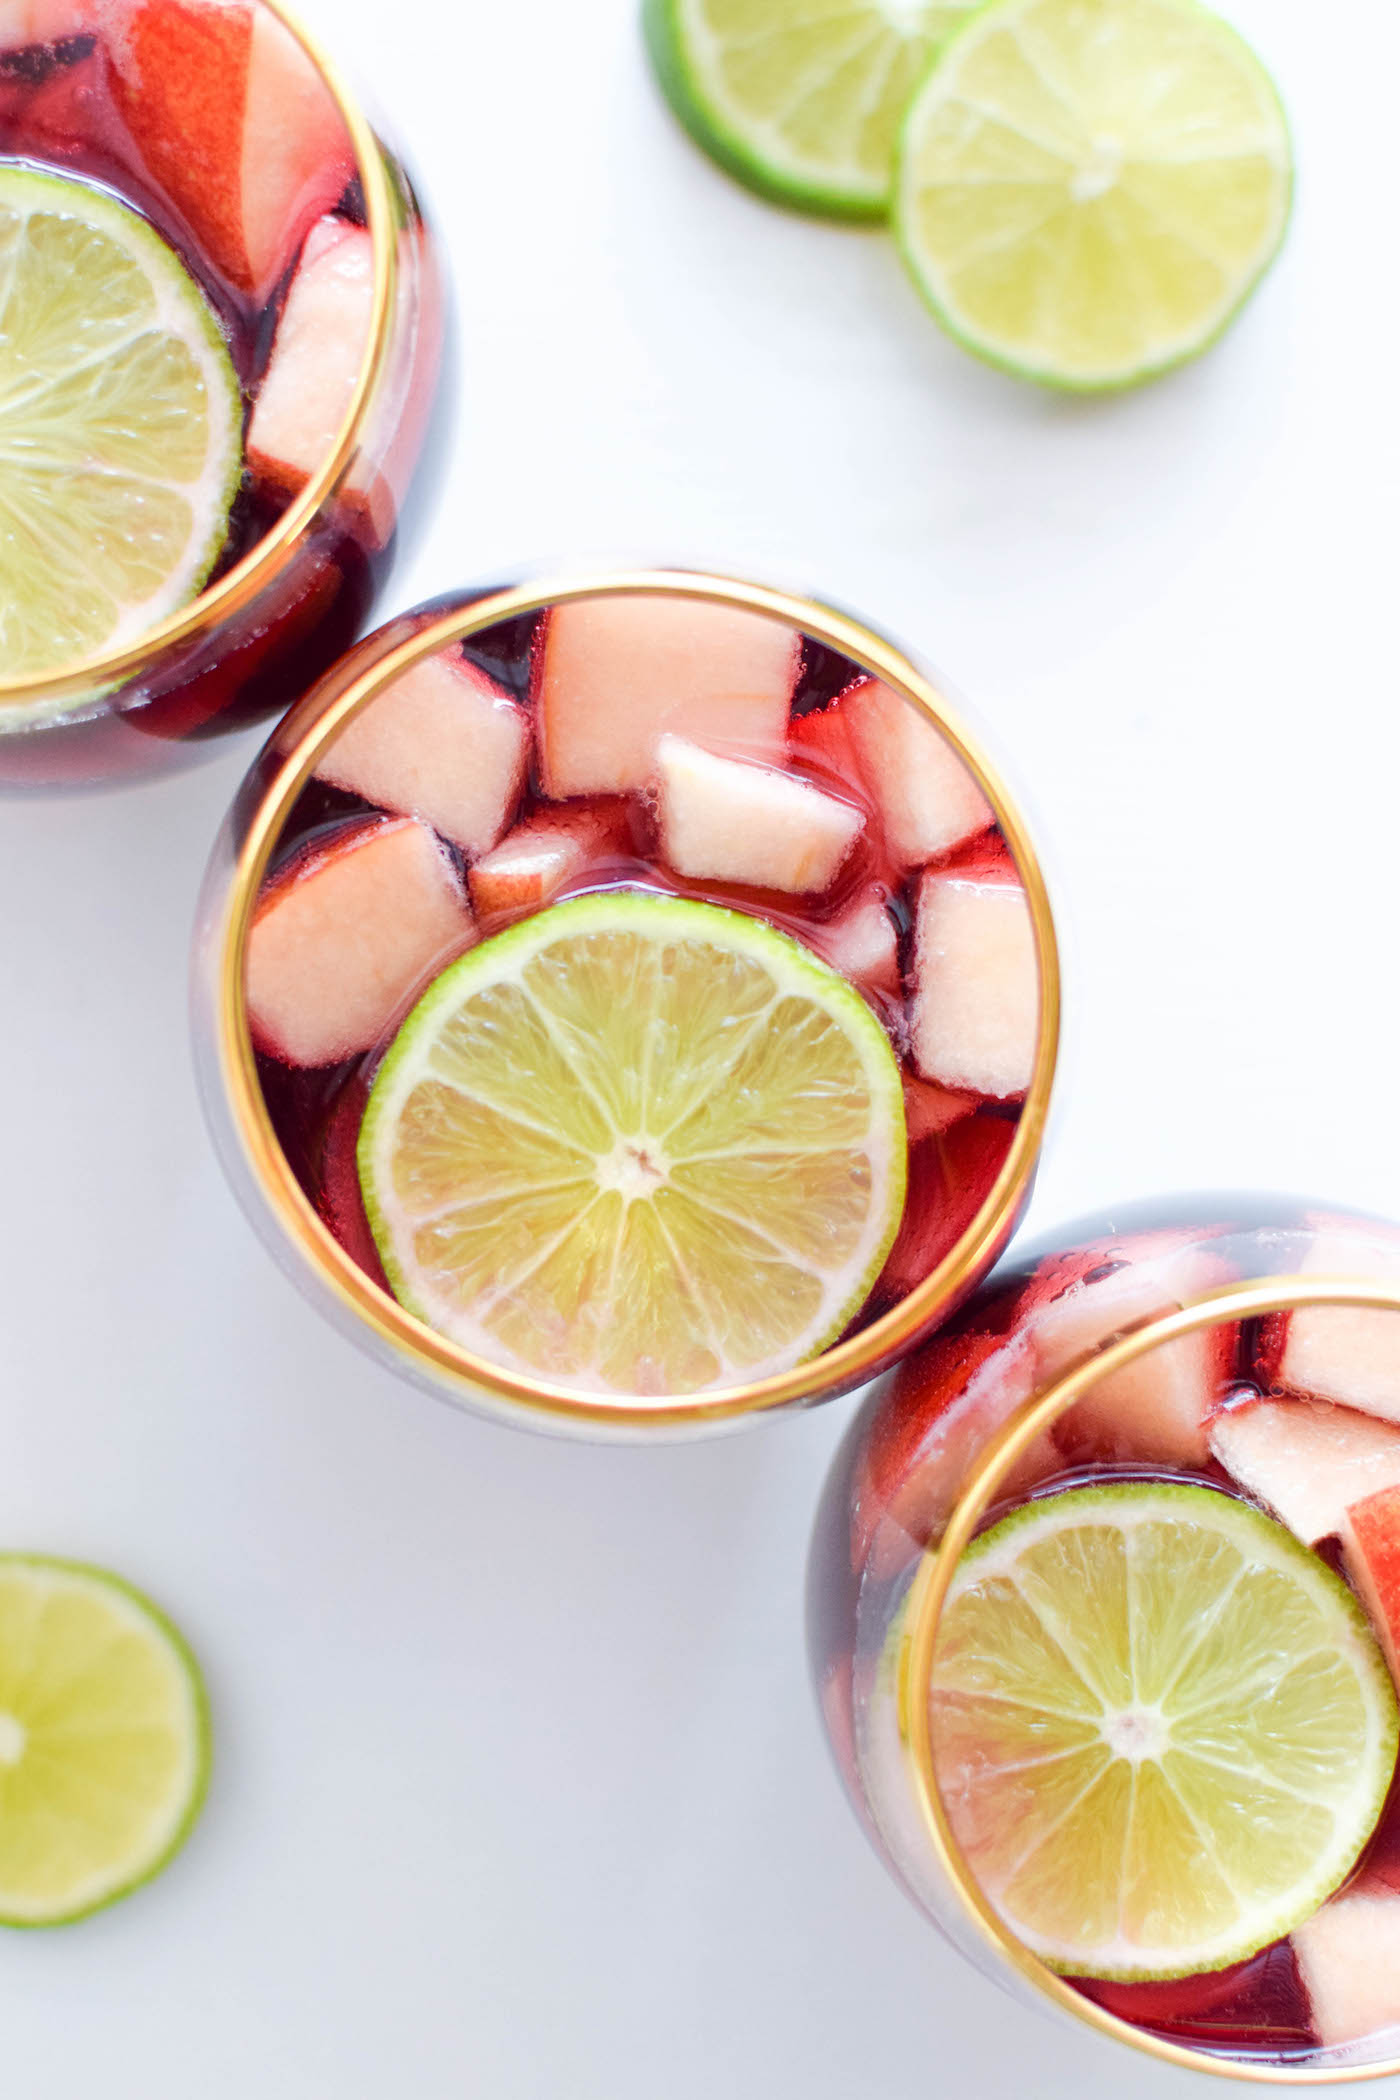 izze pomegranate sangria recipe